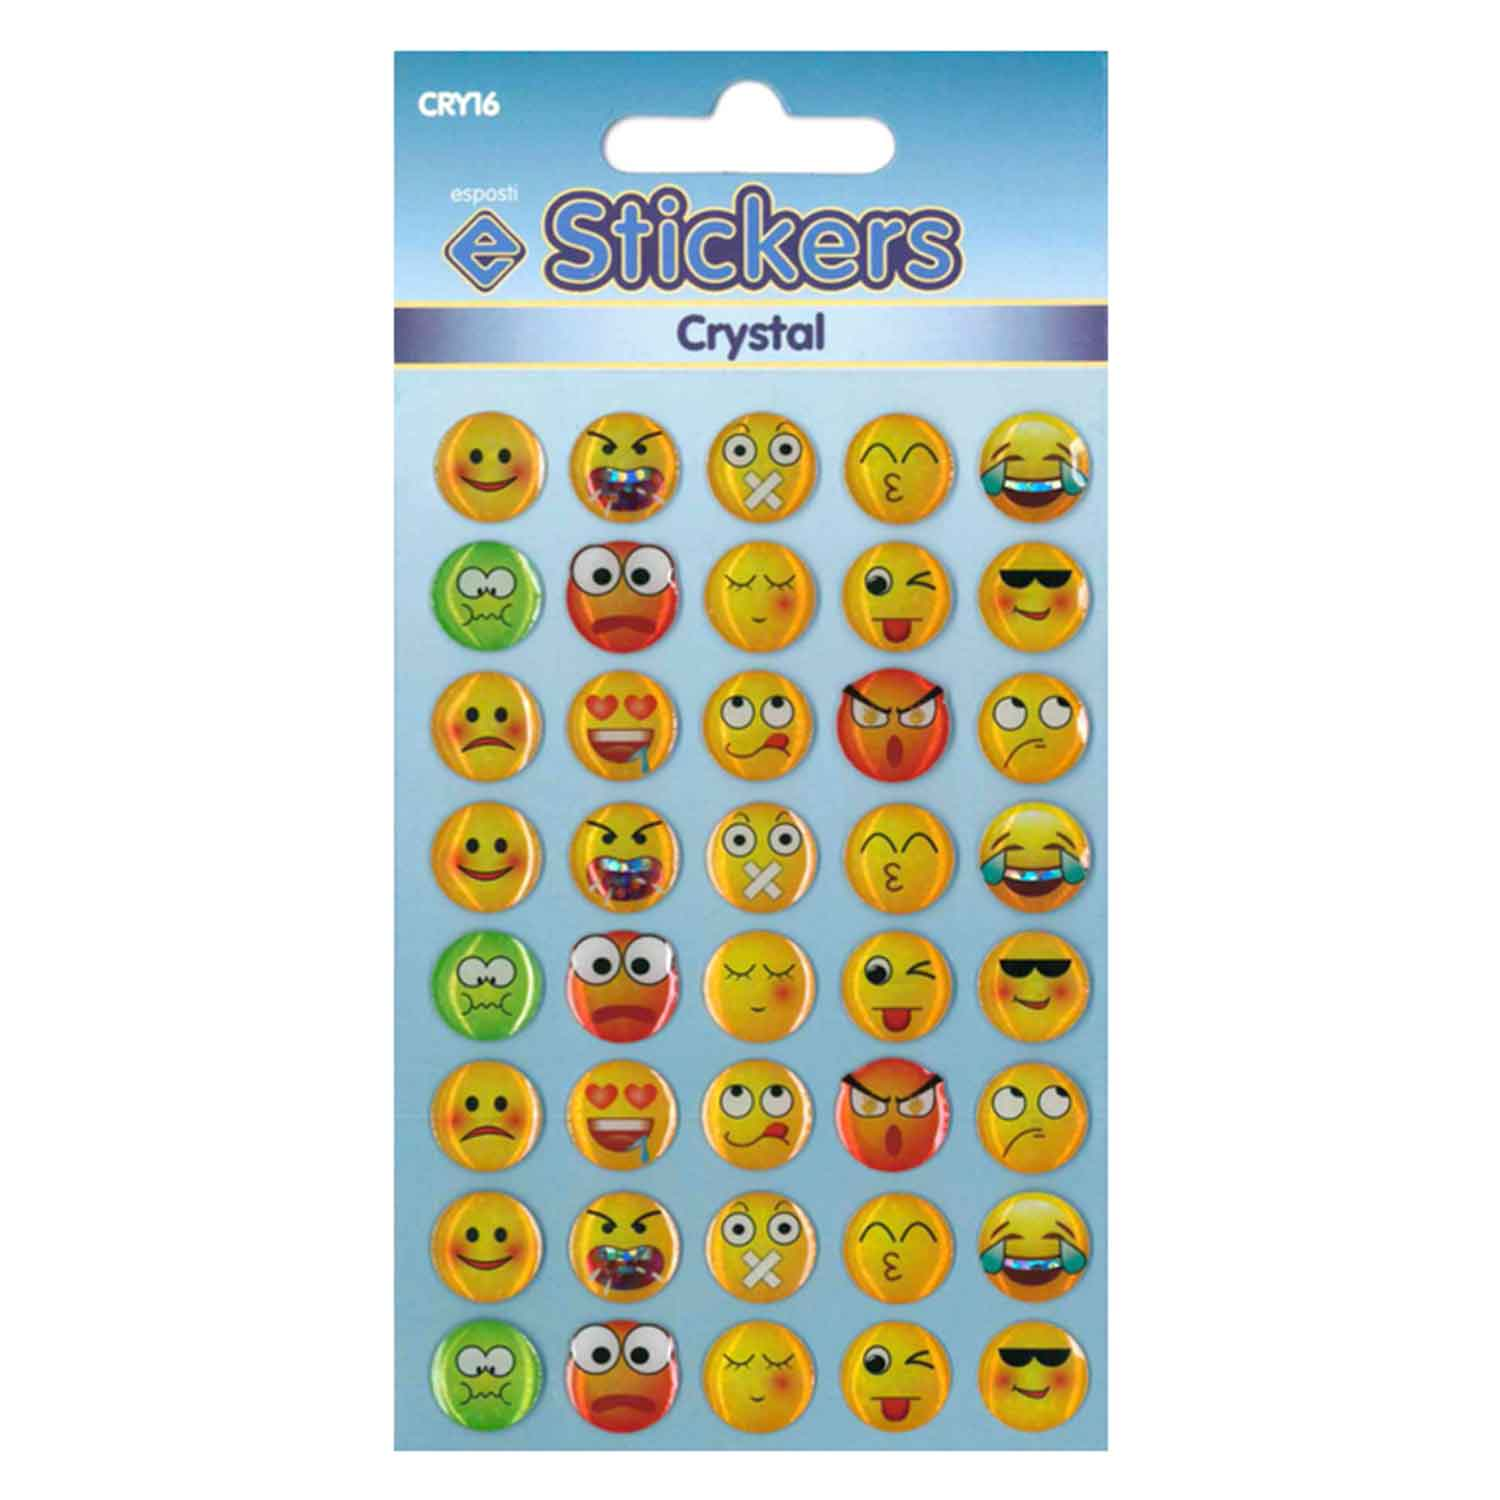 Esposti Crystal Emoticons Self Adhesive Novelty Stickers - Pack of 10